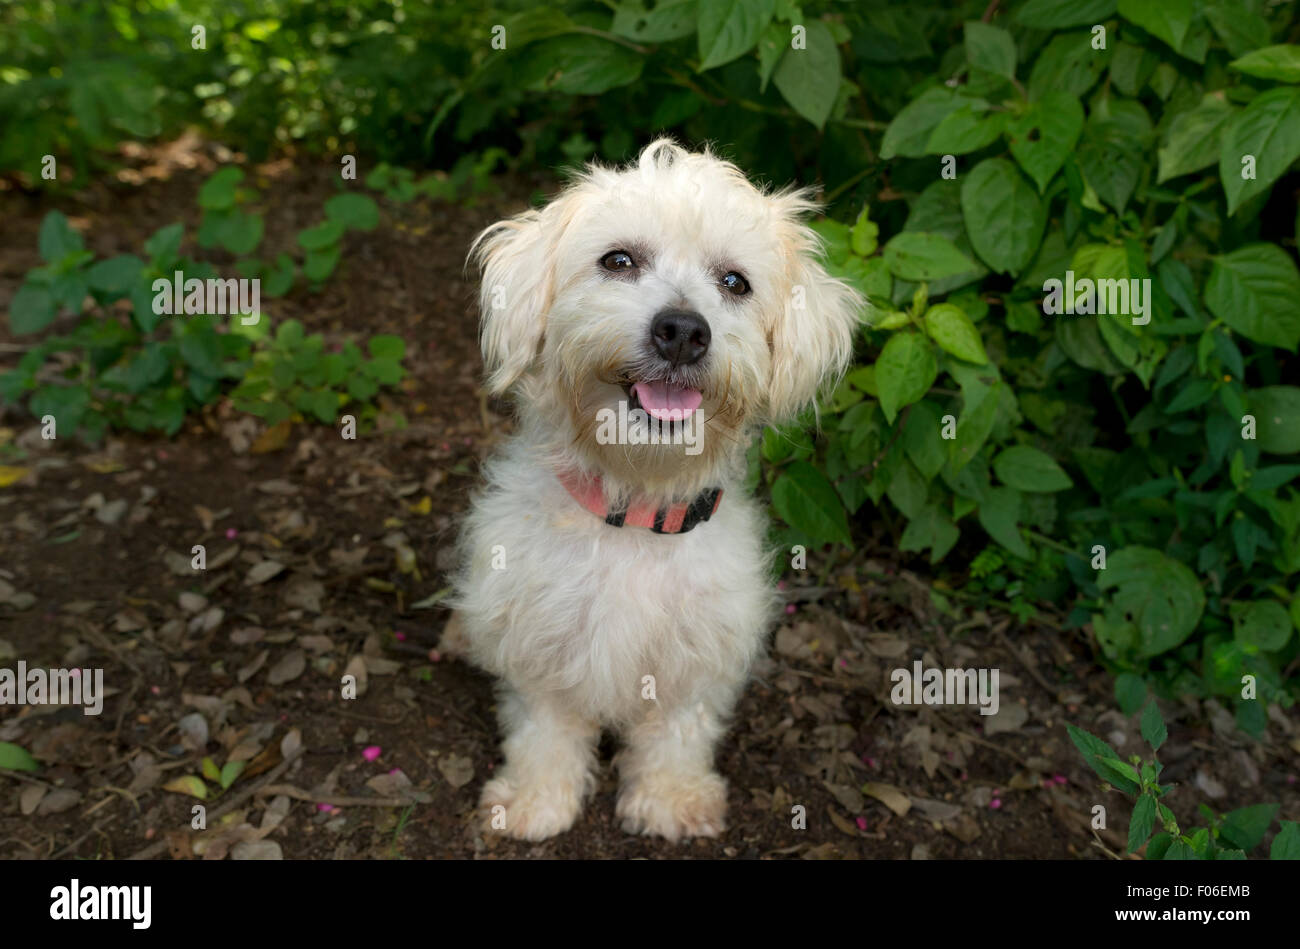 Happy Dog Is An Cute White Fluffy Happy Dog Looking Up With A Big Stock Photo Alamy